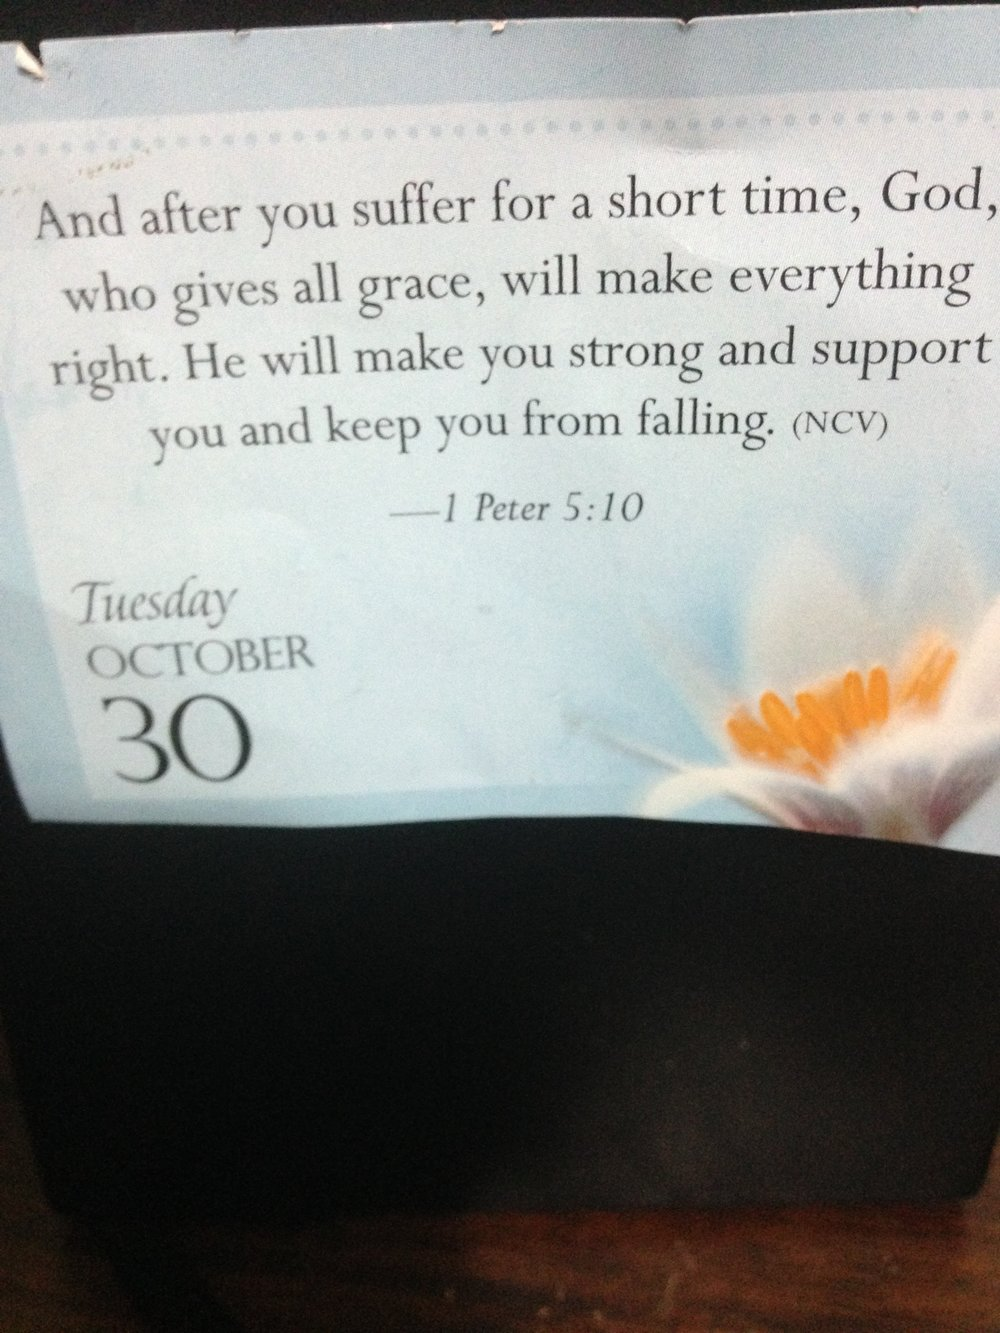 on that note: I saw this verse and had to take a picture of it because Grams showed it to me after I was really down